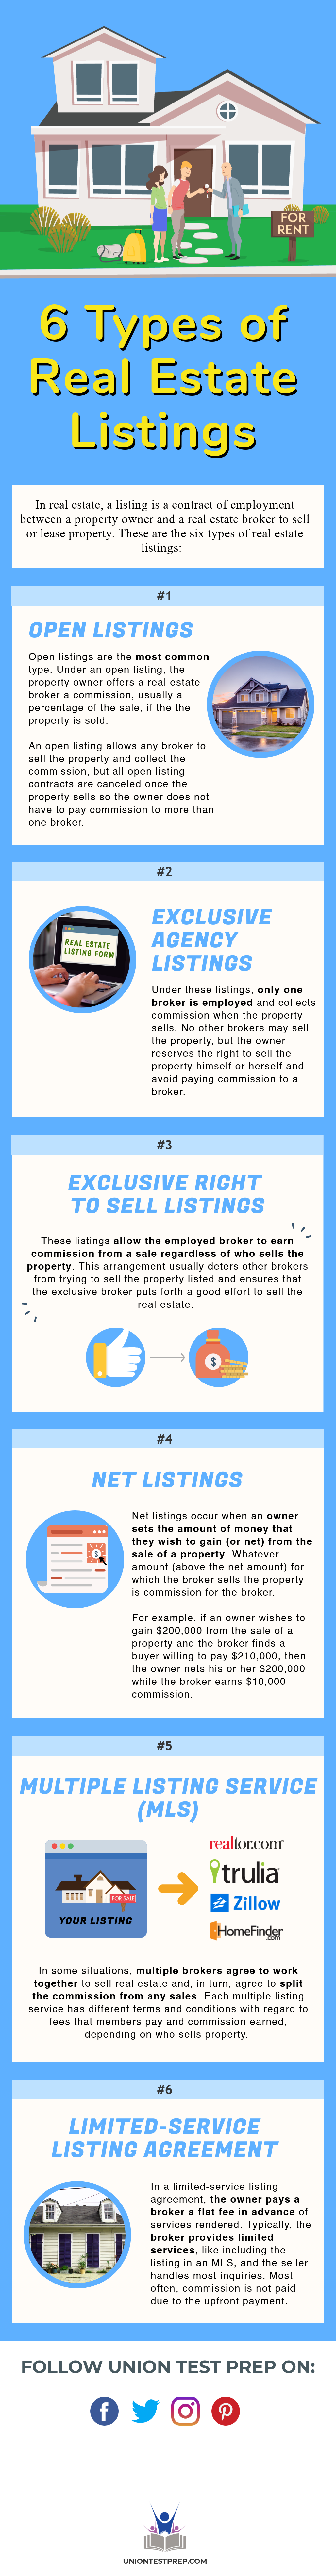 6 types of real estate